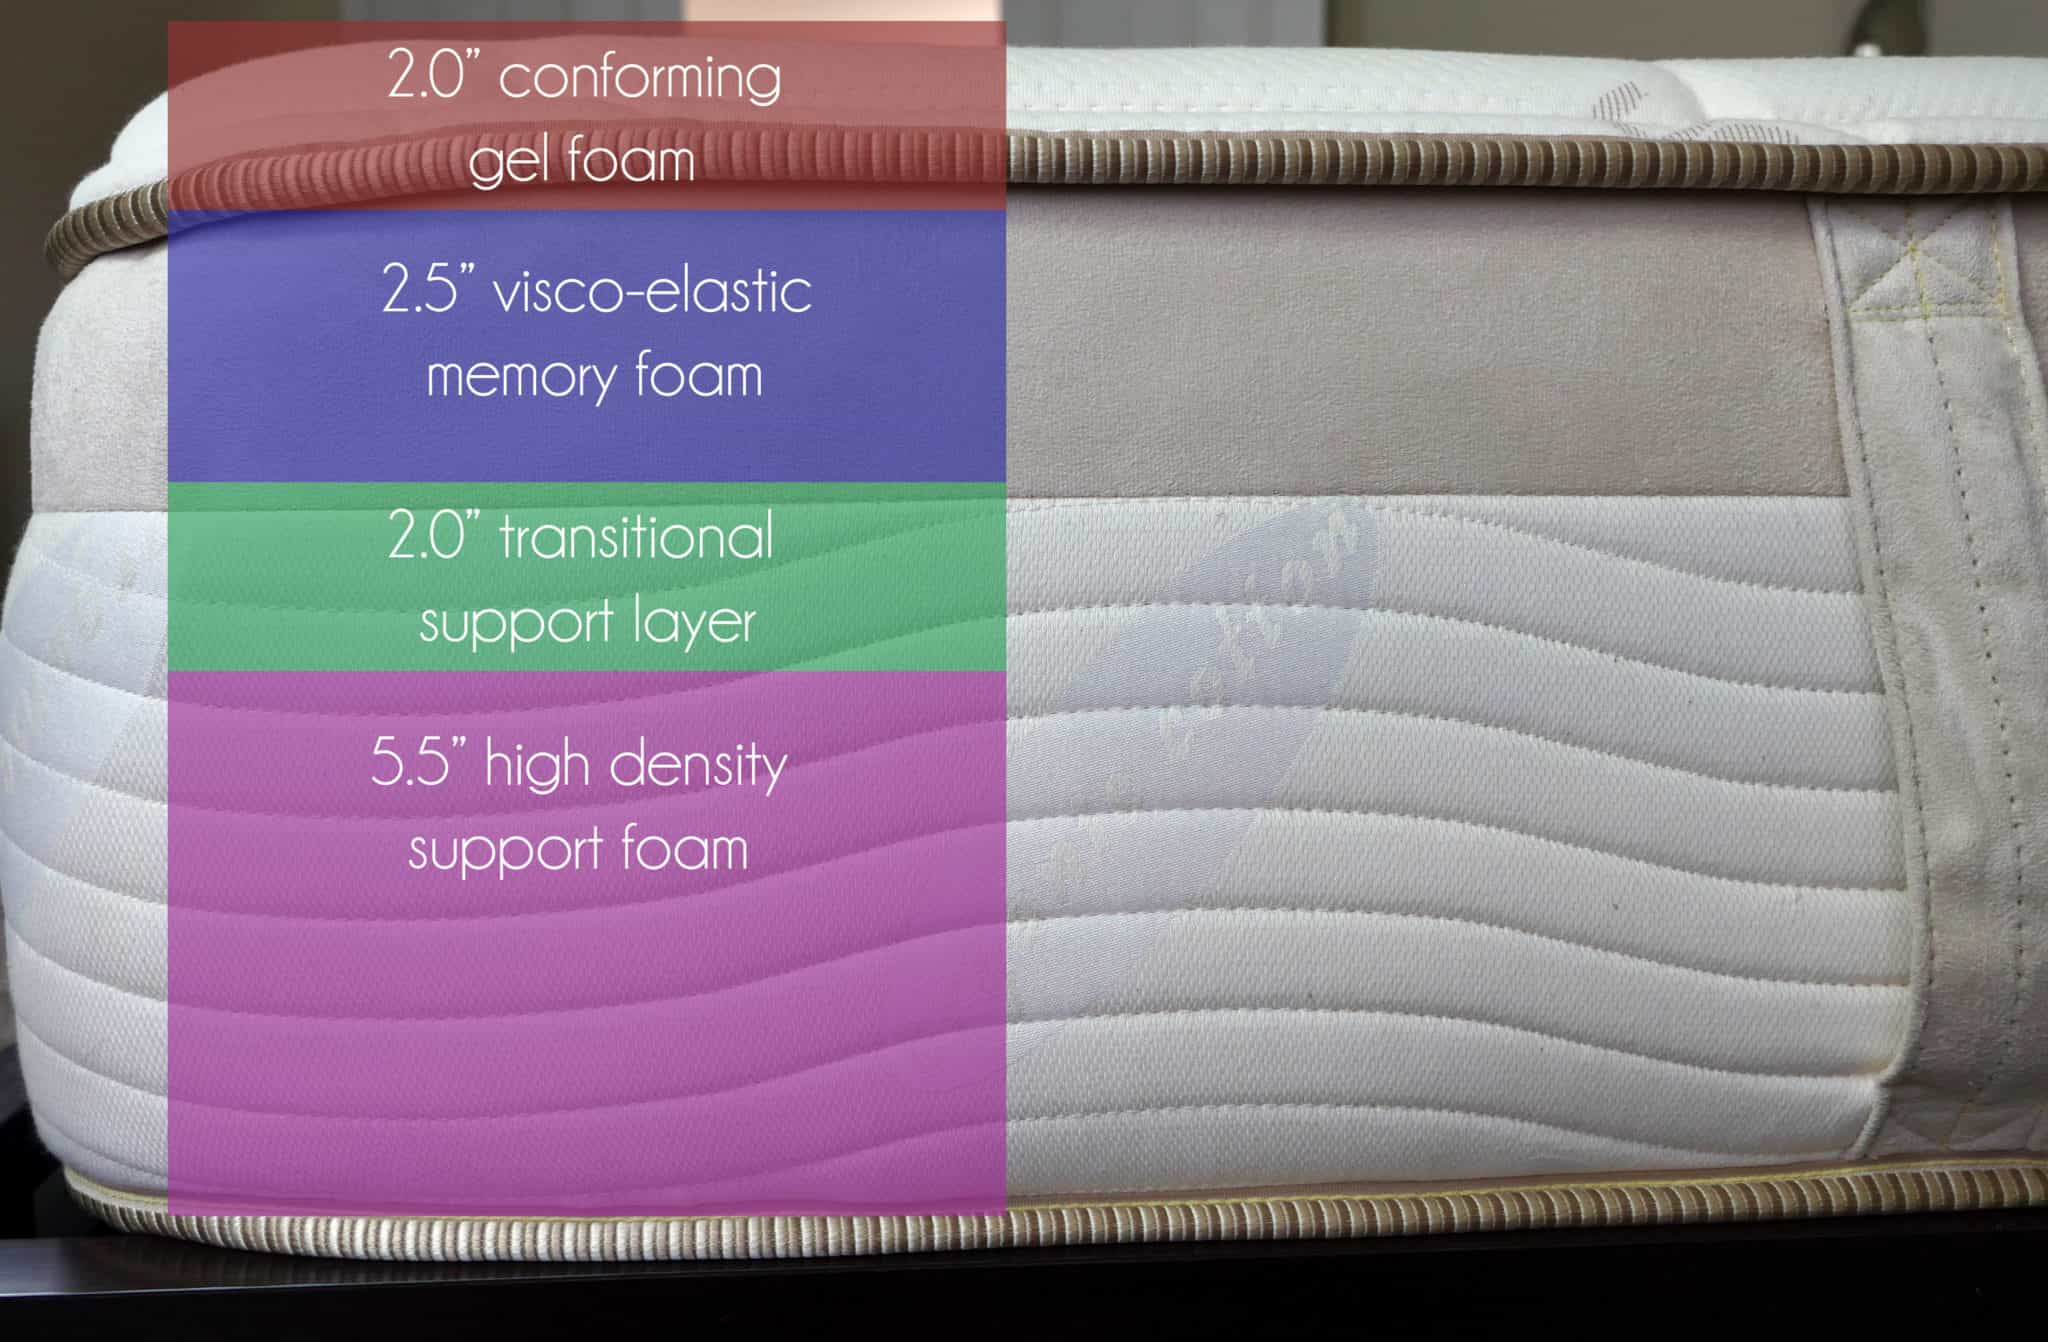 "Loom & Leaf mattress layers (top to bottom) - 2.0"" conforming gel foam, 2.5"" visco-elastic memory foam, 2.0"" transitional support layer, 5.5"" high density support foam"